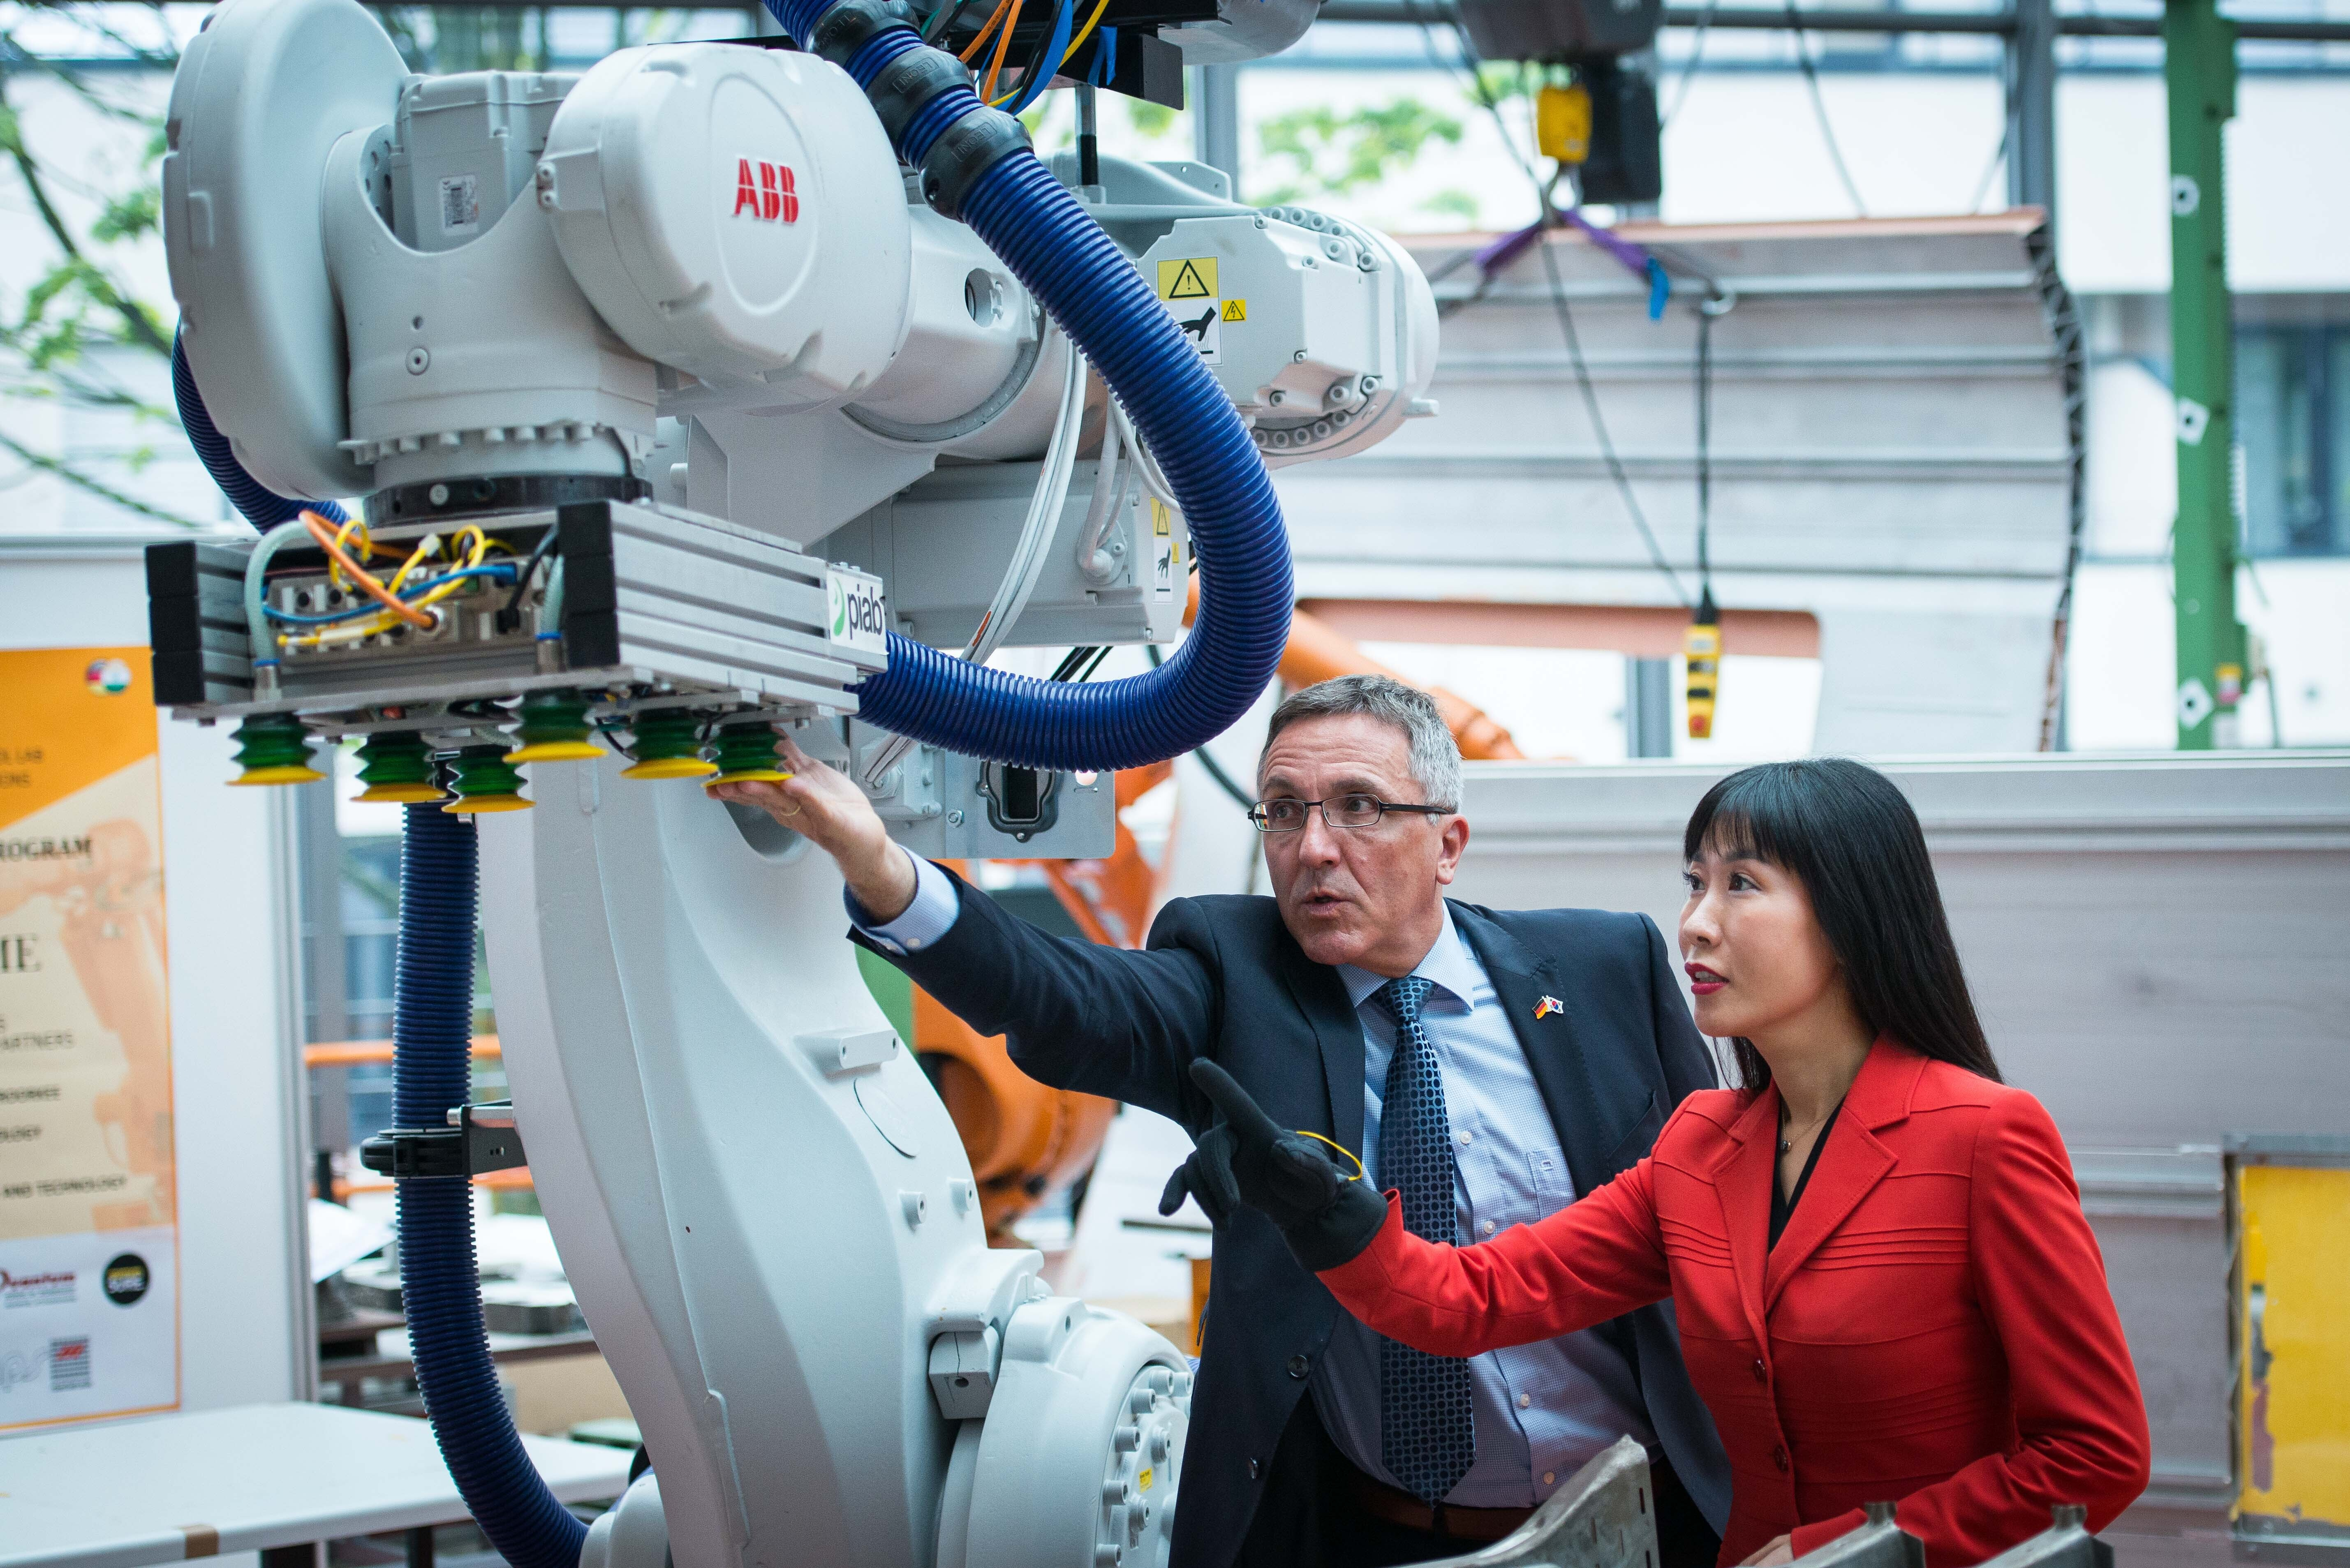 Professor Dr Thomas Gries and Soyeon Schröder-Kim with data glove at the industrial robot